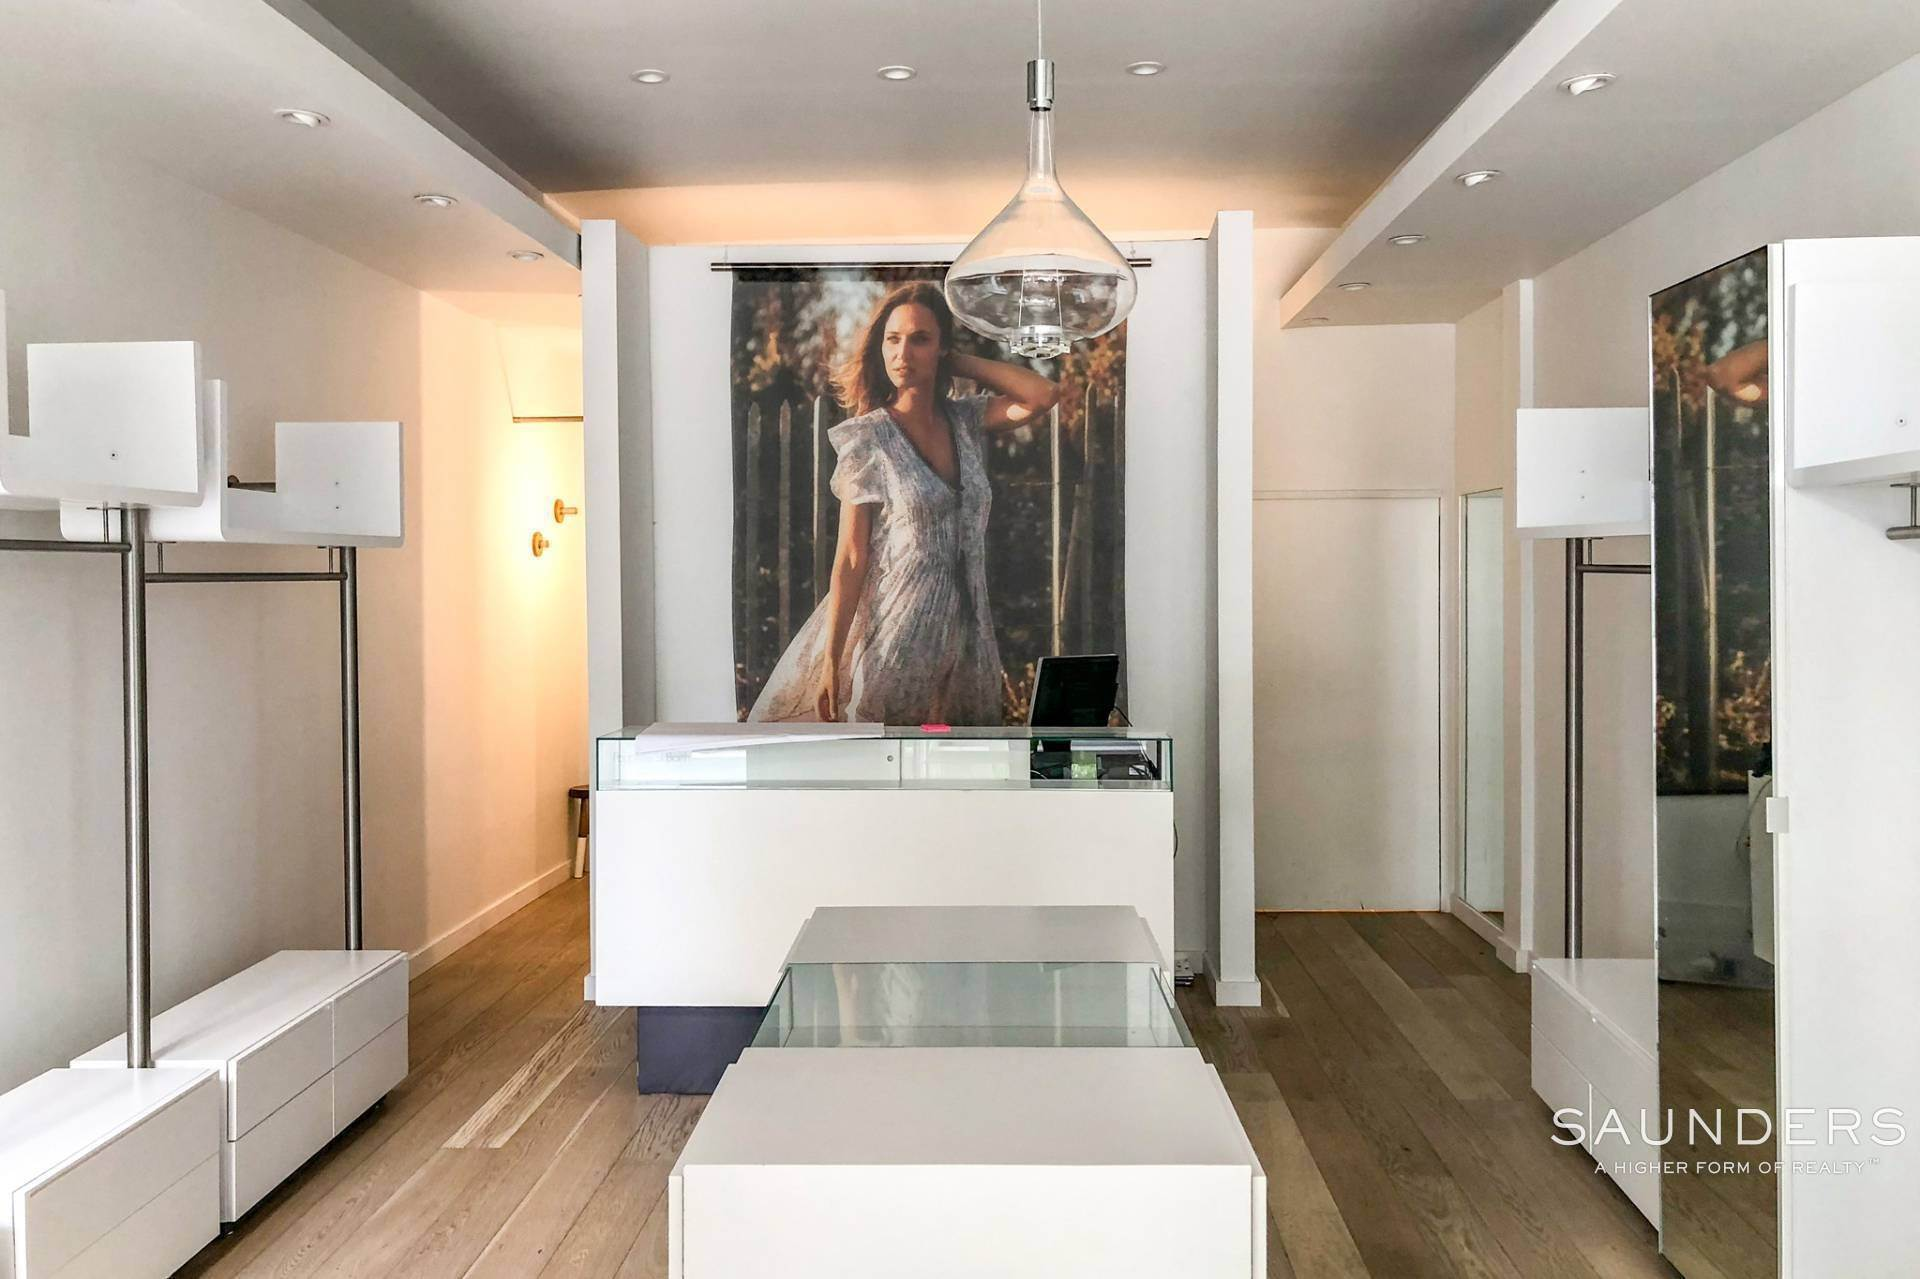 4. Commercial for Sale at East Hampton Village Retail For Sale- Investment Opportunity 52 Main Street, #2, East Hampton, East Hampton Town, NY 11937